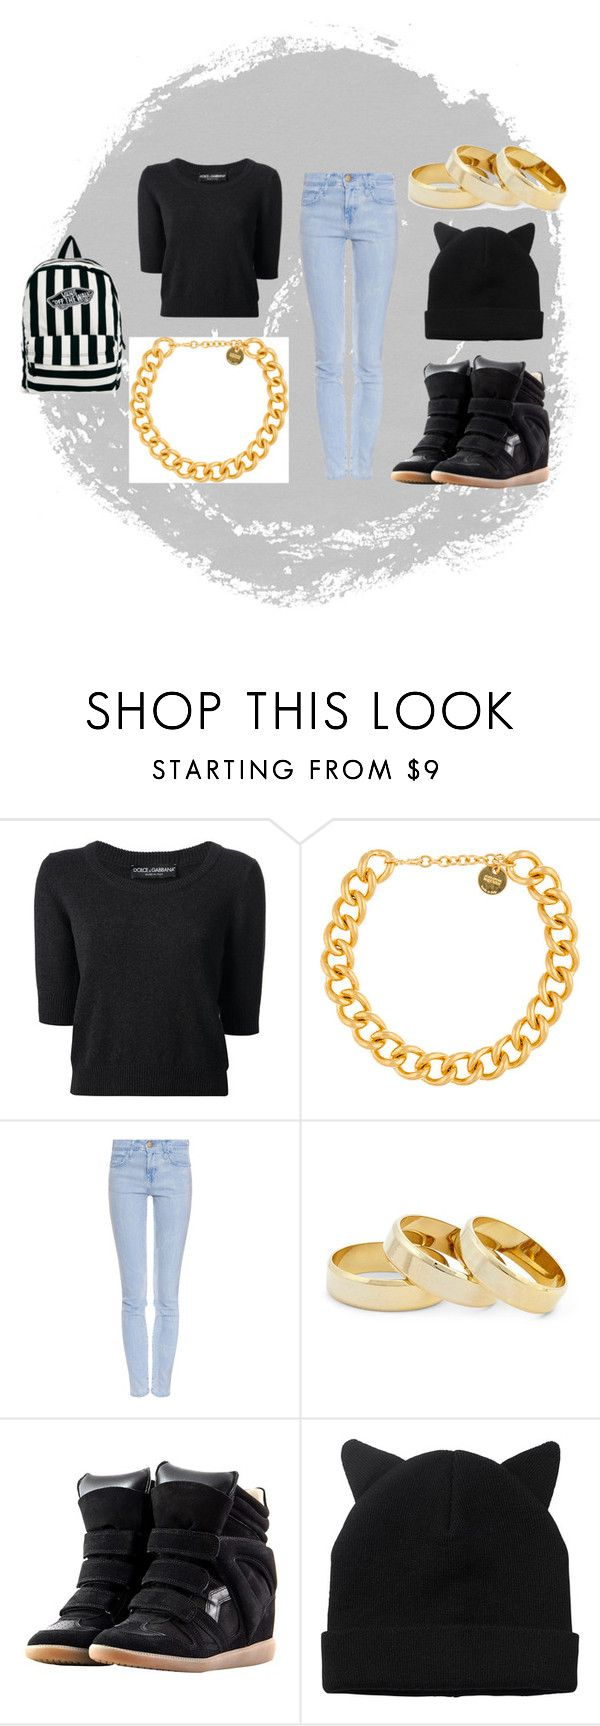 """Sans titre #2"" by mililondres ❤ liked on Polyvore featuring Dolce&Gabbana, Alexander McQueen, Current/Elliott, Sole Society, Monki and Vans"